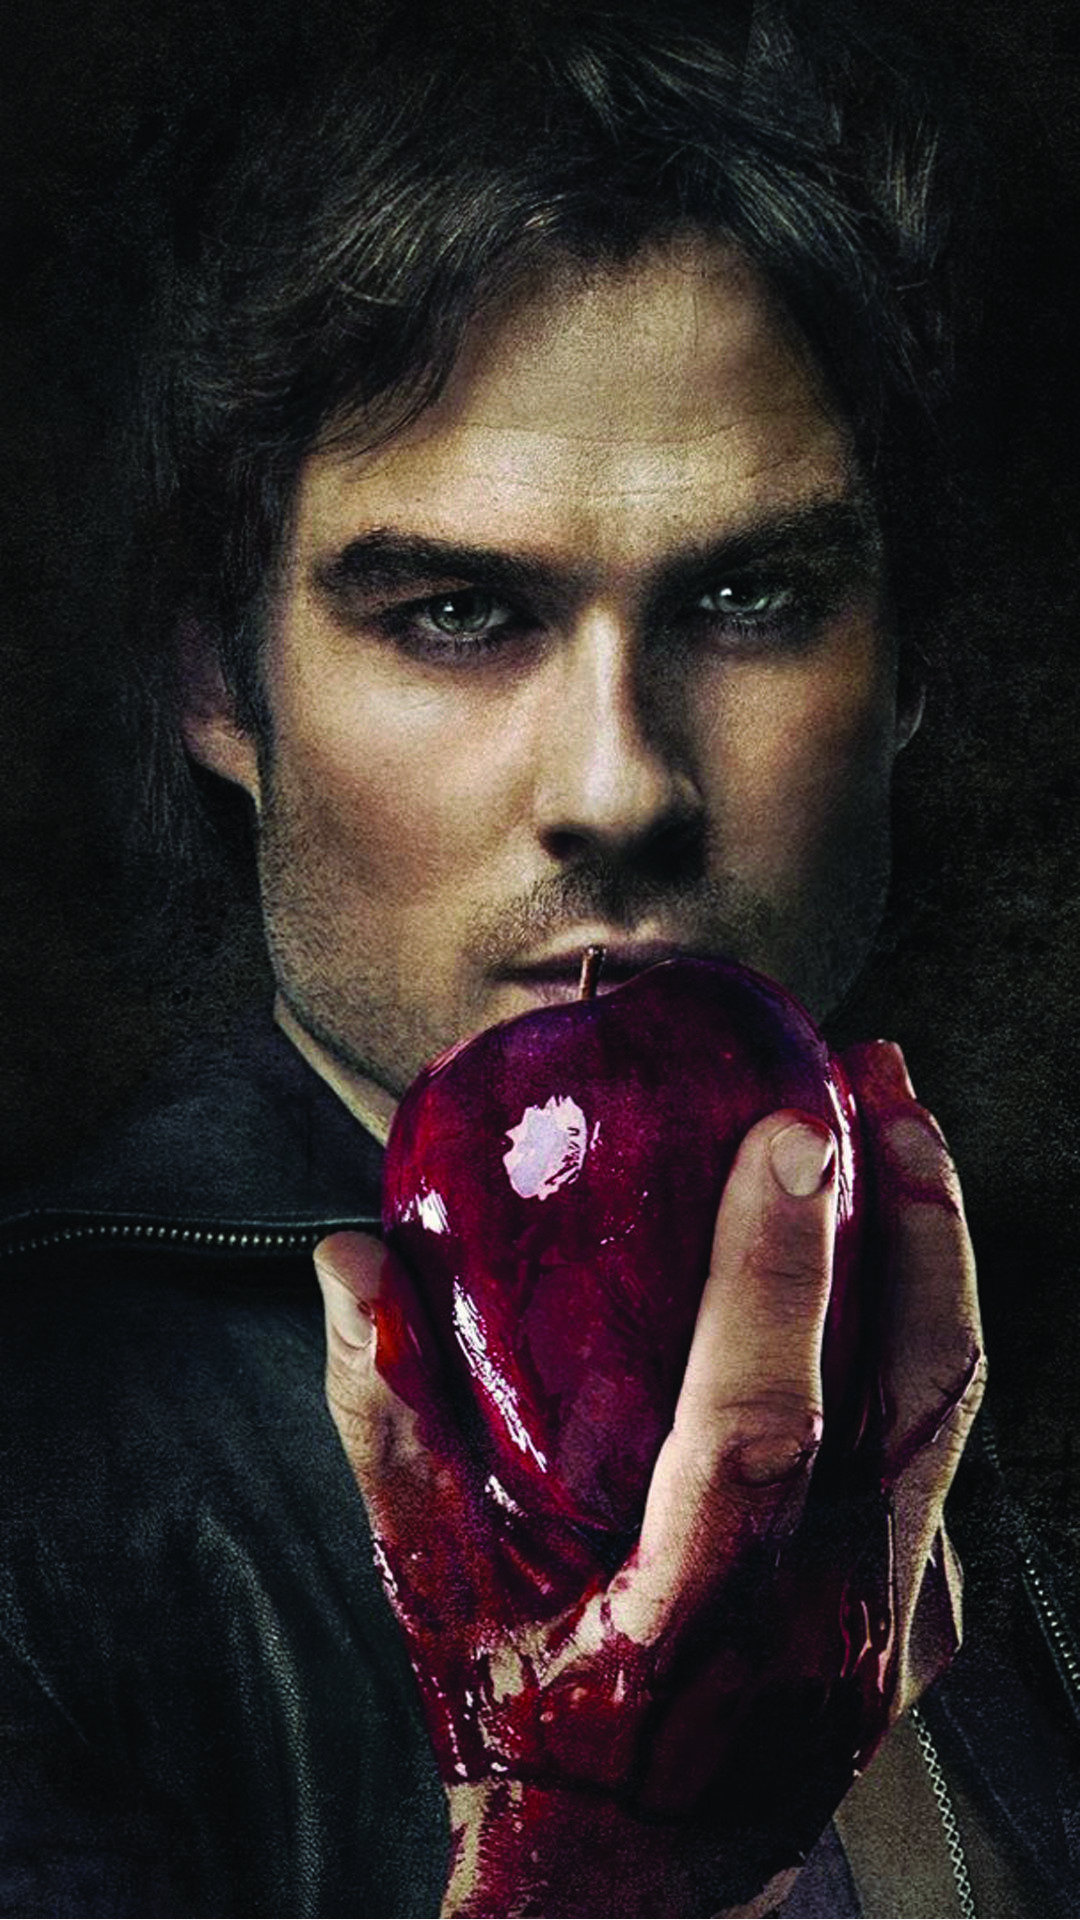 Damon Salvatore Ian Somerhalder Vampire Diaries Android Wallpapers